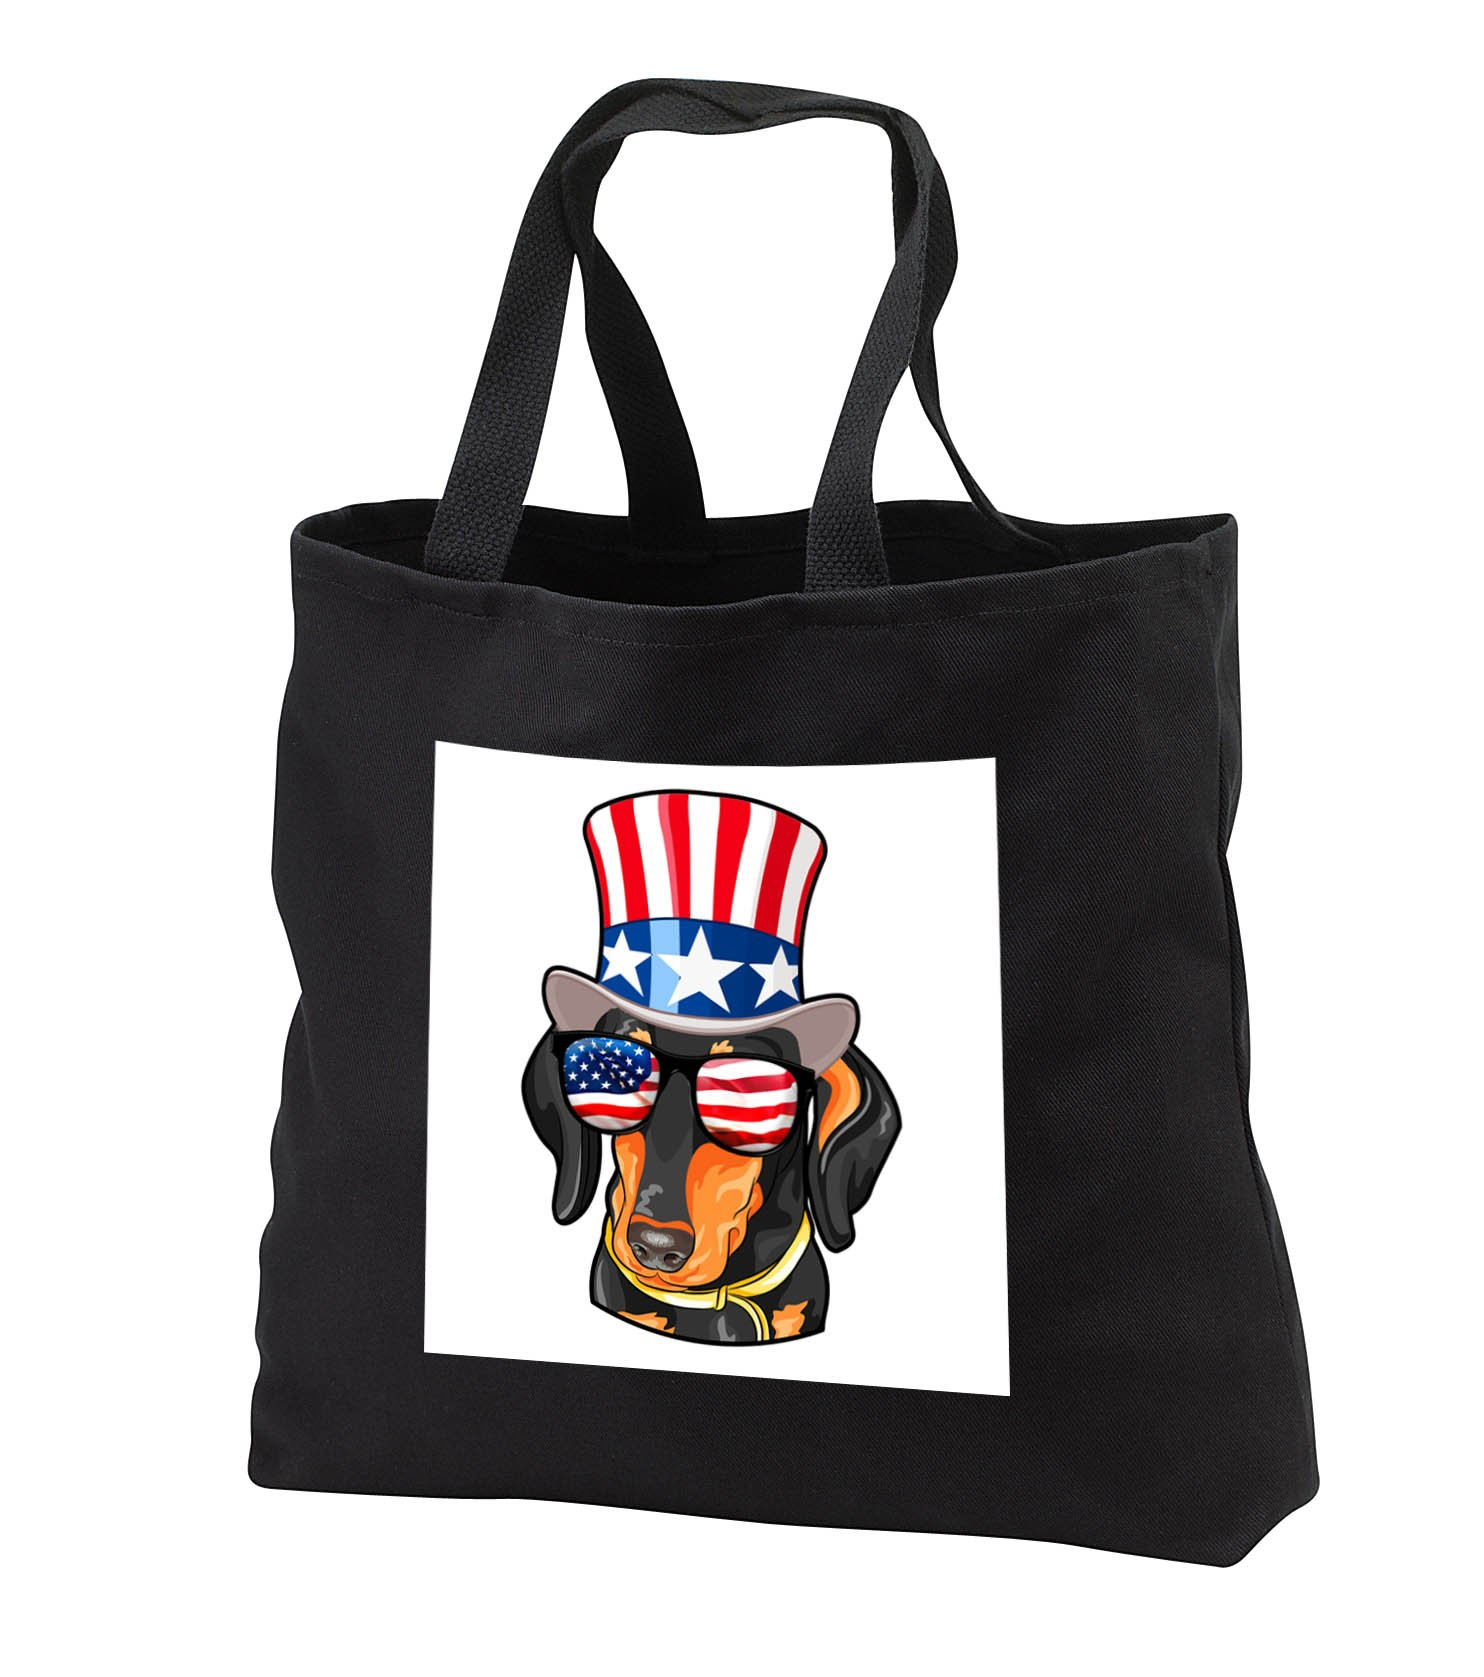 Patriotic American Dogs - Dachshund Dog With American Flag Sunglasses and Top hat - Tote Bags - Black Tote Bag JUMBO 20w x 15h x 5d (tb_282712_3)